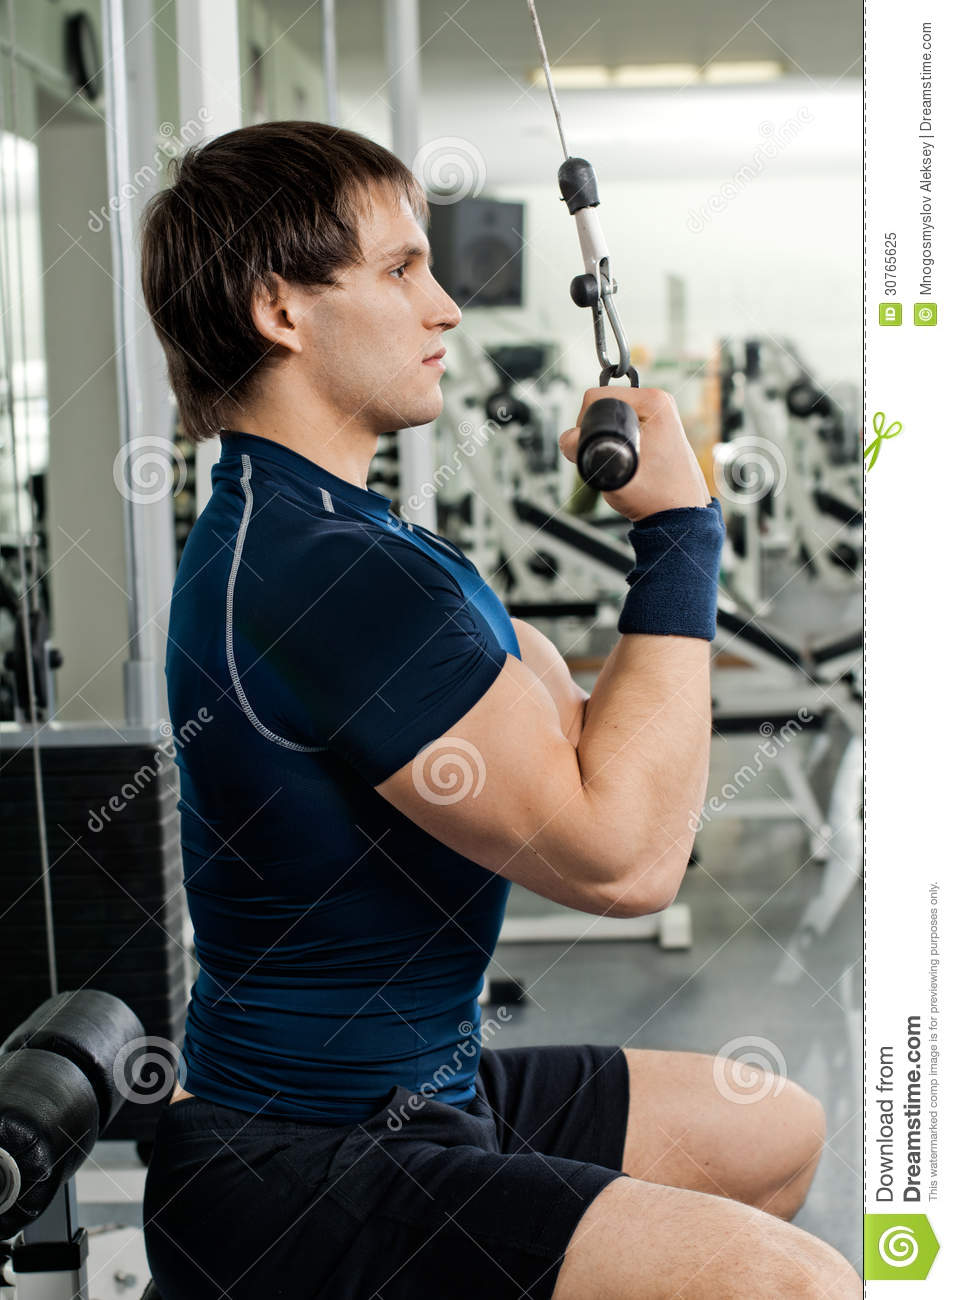 Sport Gay Royalty Free Stock Photo - Image: 30765625